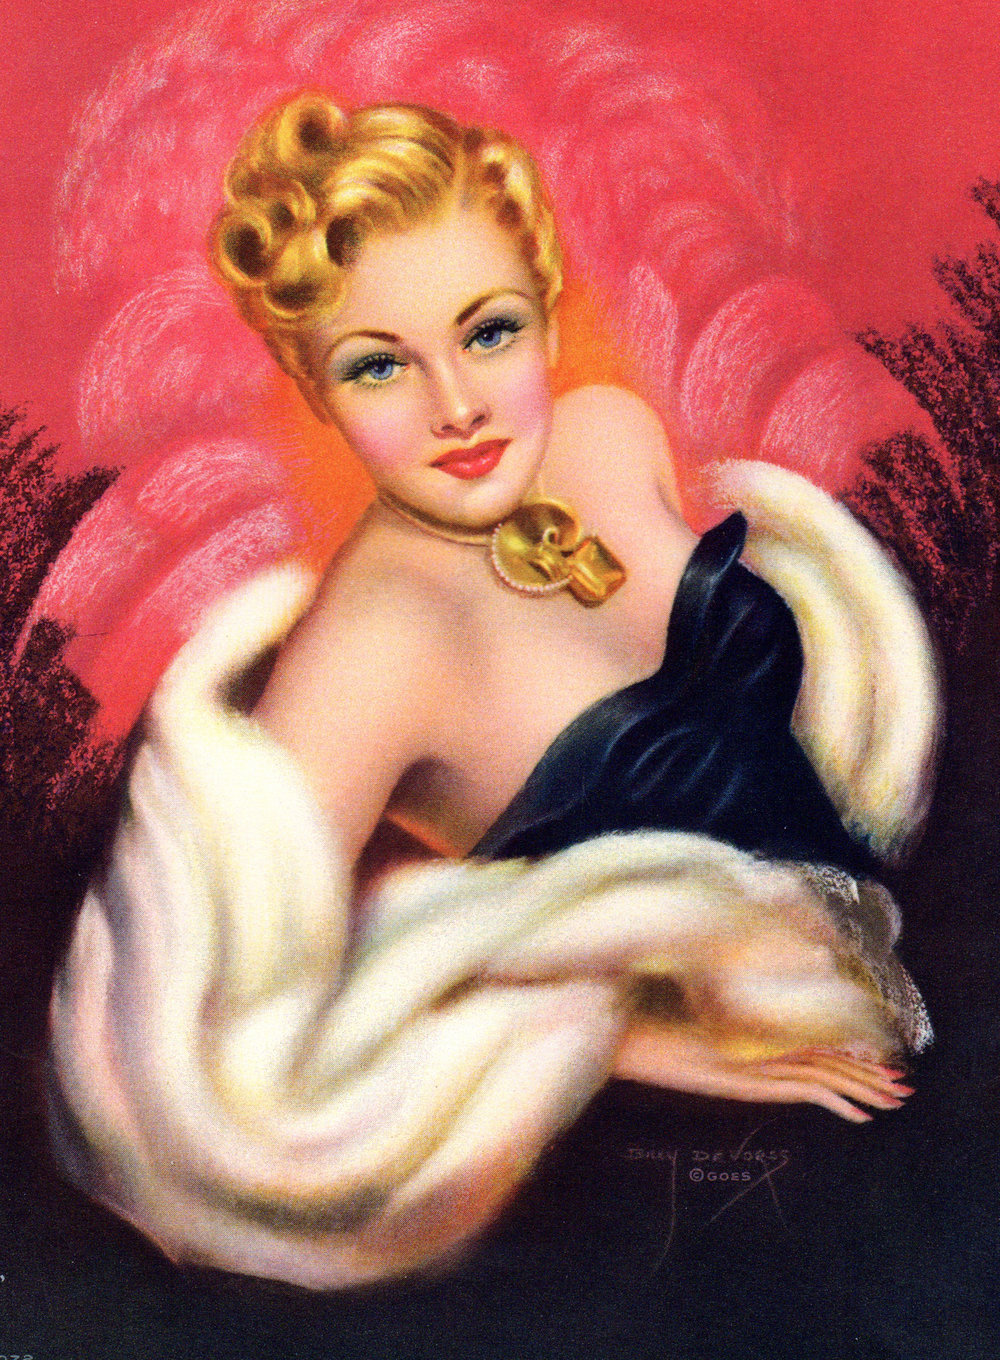 Pin-ups, Glamour Girls, Women, etc.